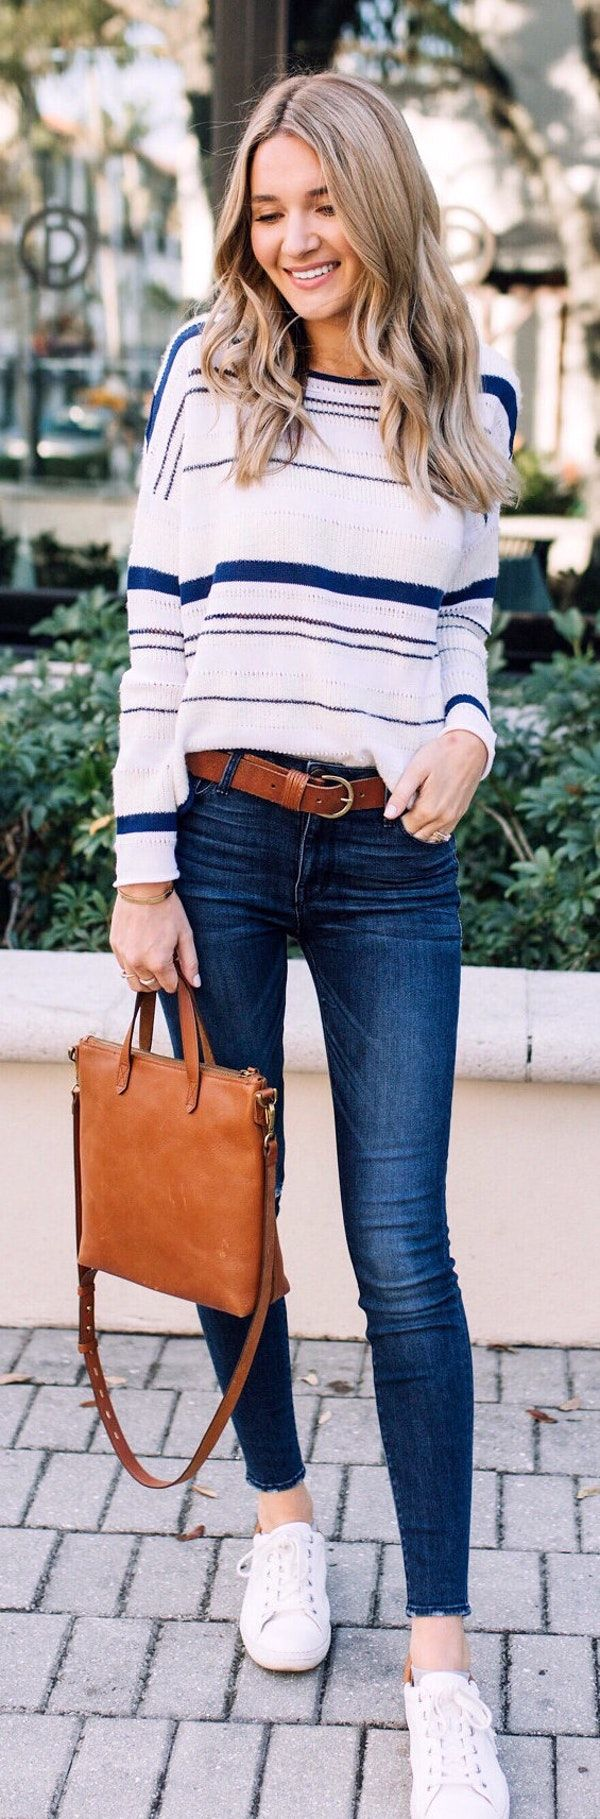 #spring #outfits  woman in white and blue striped long-sleeved shirt and blue jeans. Pic by @kaitlinkkeegan